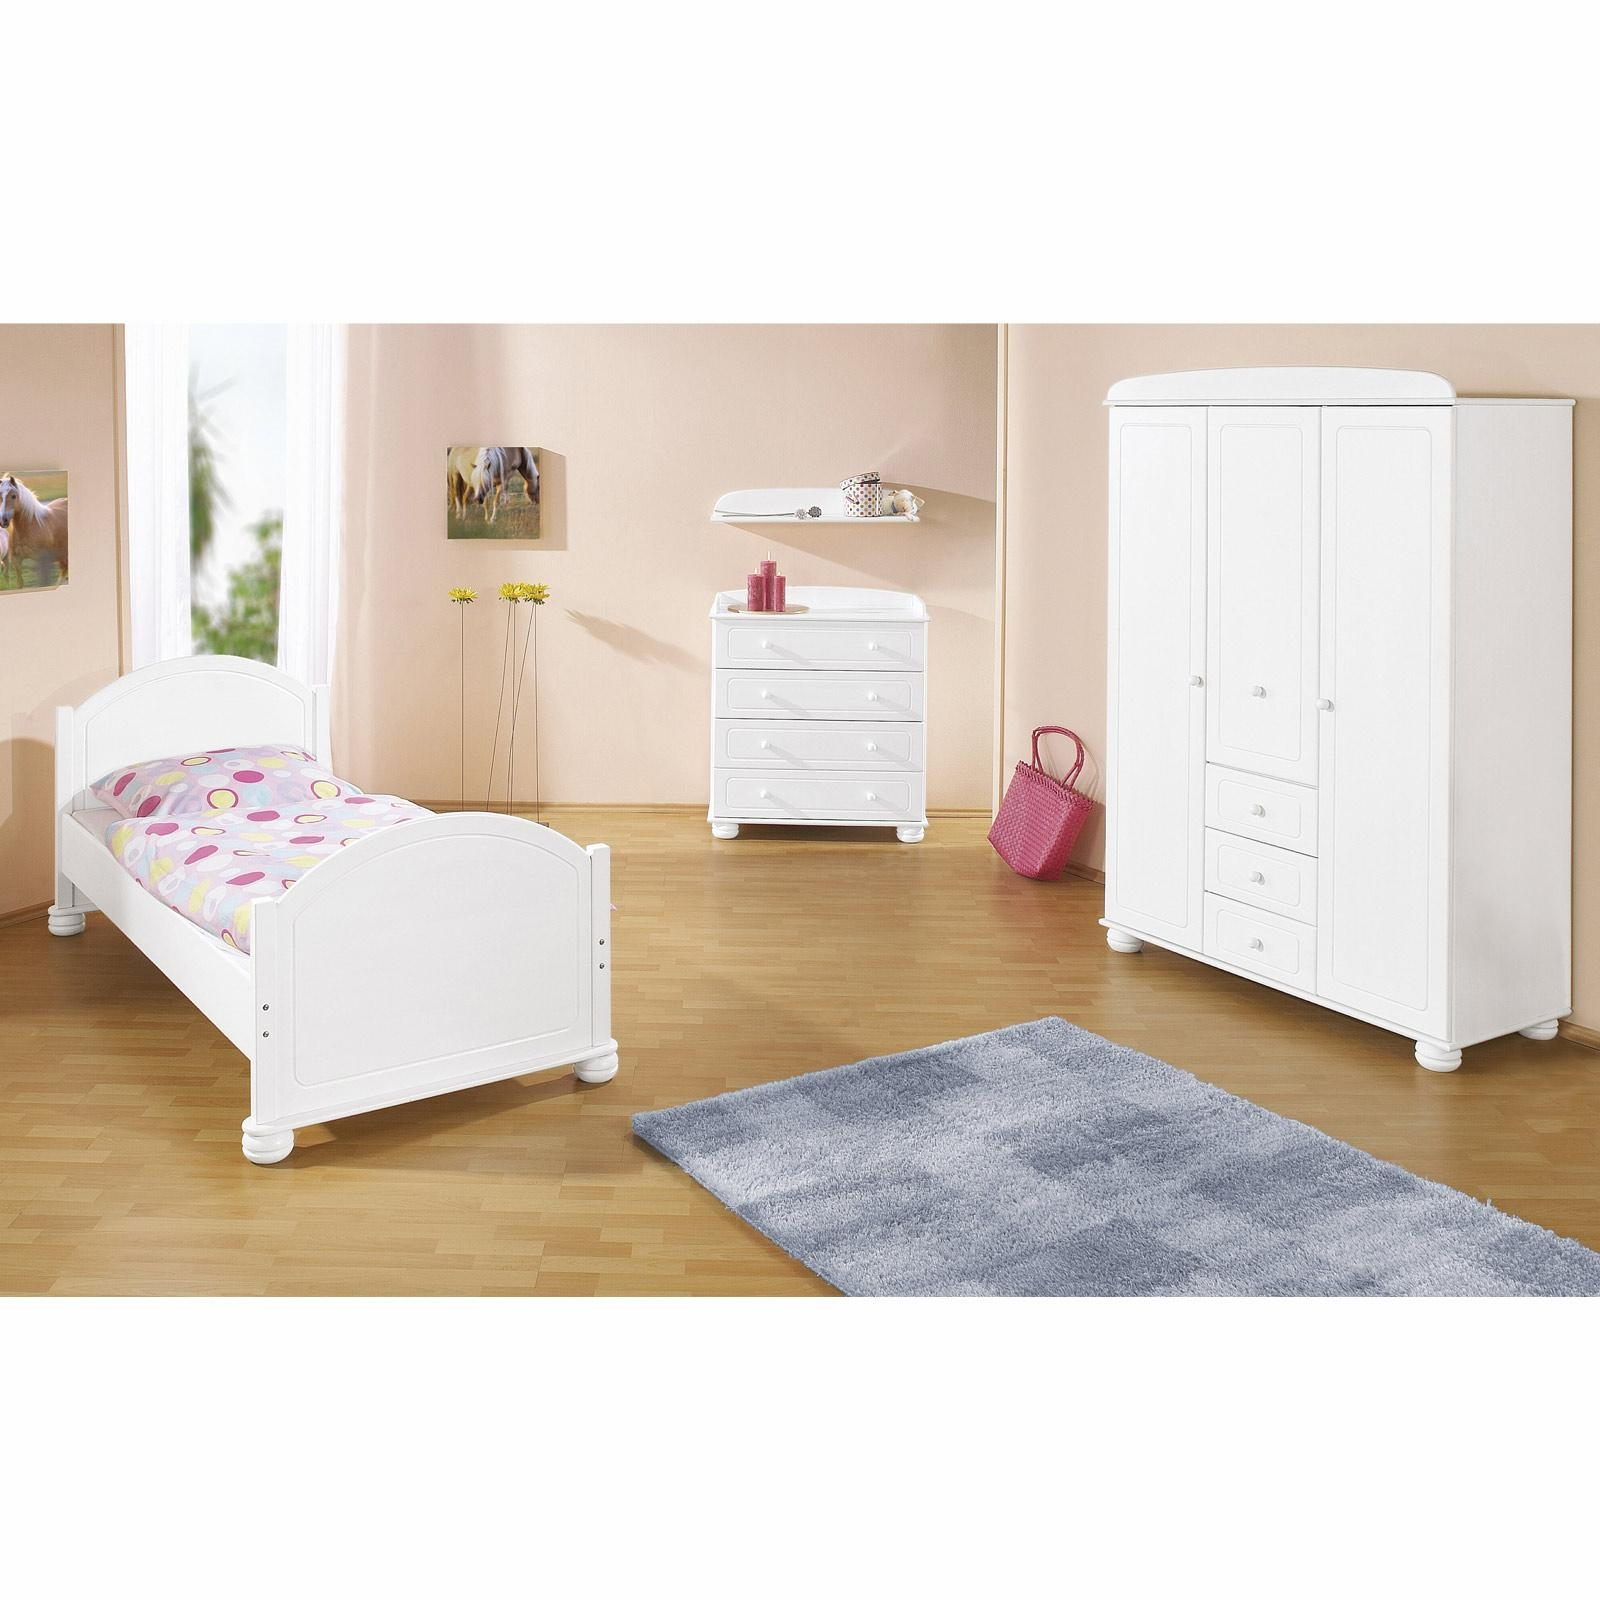 chambre enfant bois massif lasur blanc clara. Black Bedroom Furniture Sets. Home Design Ideas